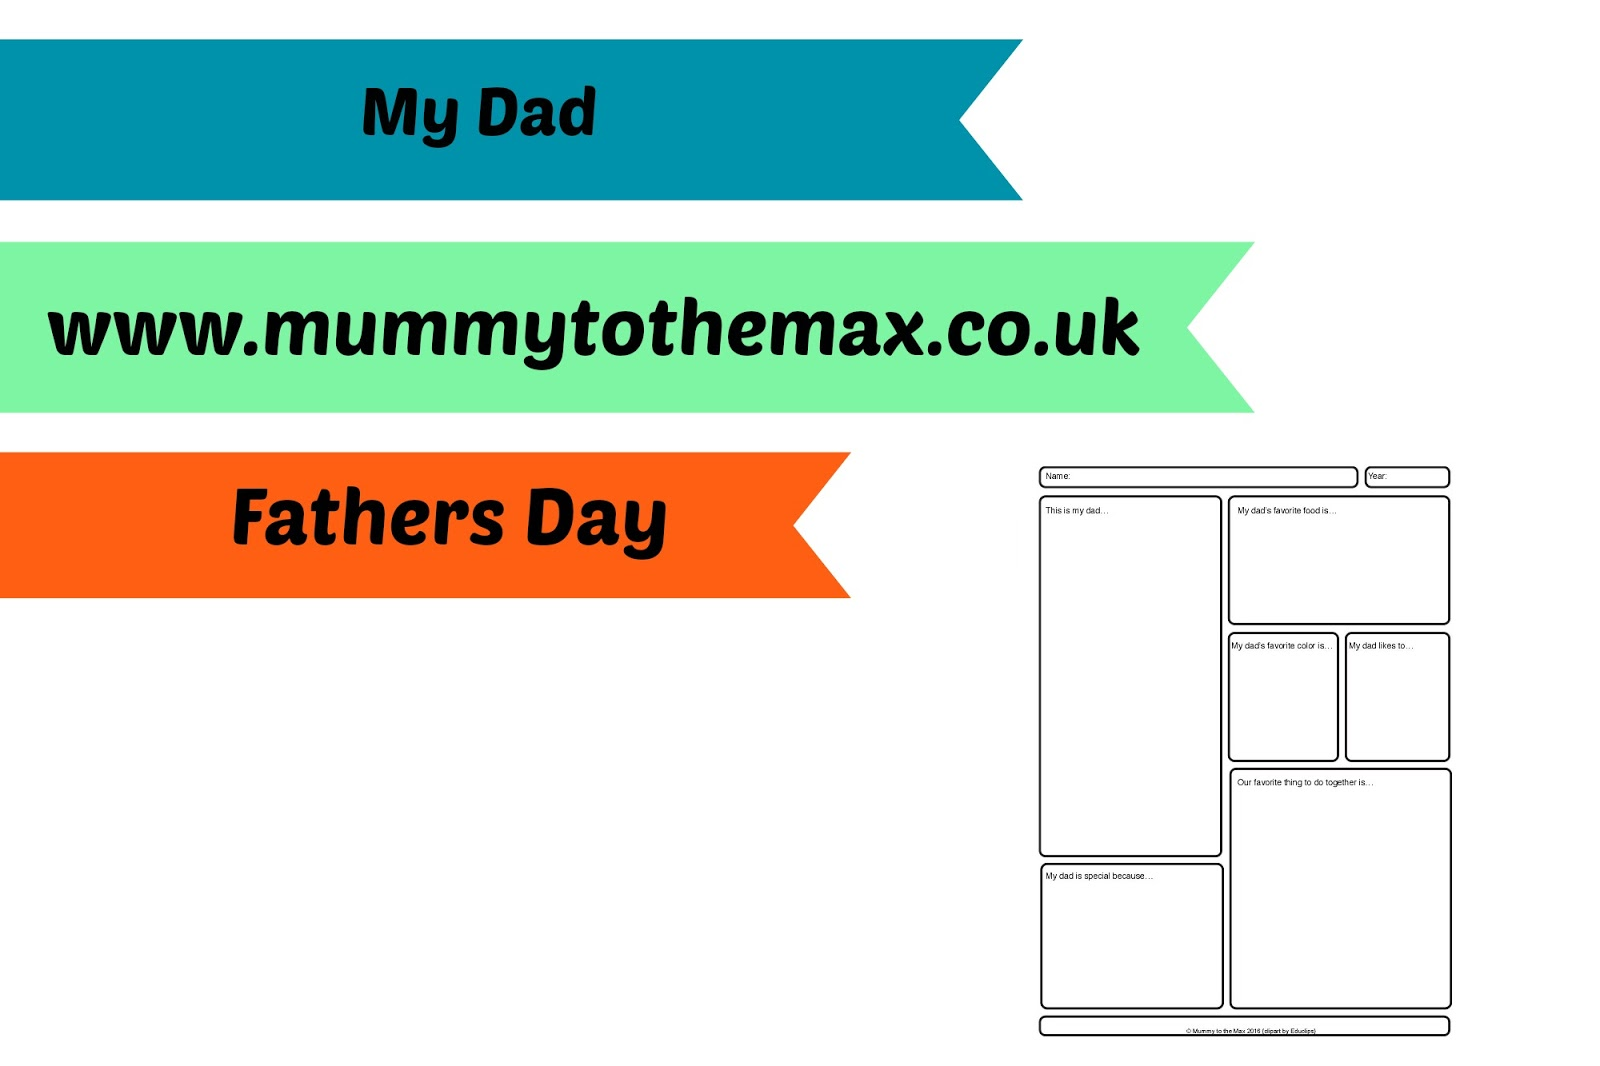 My Dad Worksheet & Free Printable | MUMMY TO THE MAX